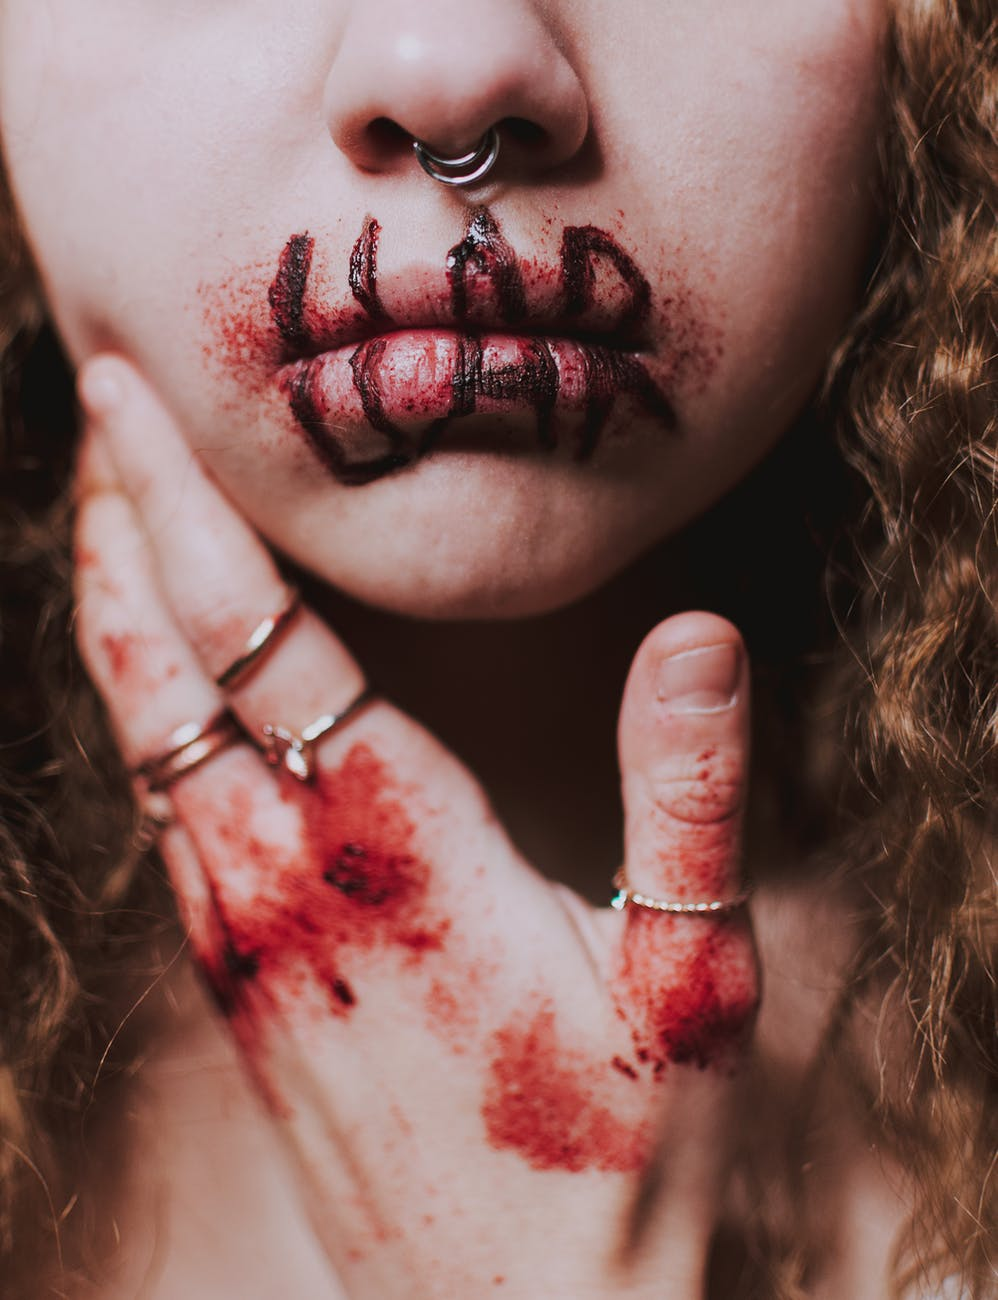 unrecognizable woman with bloody wounds with word liar on lips